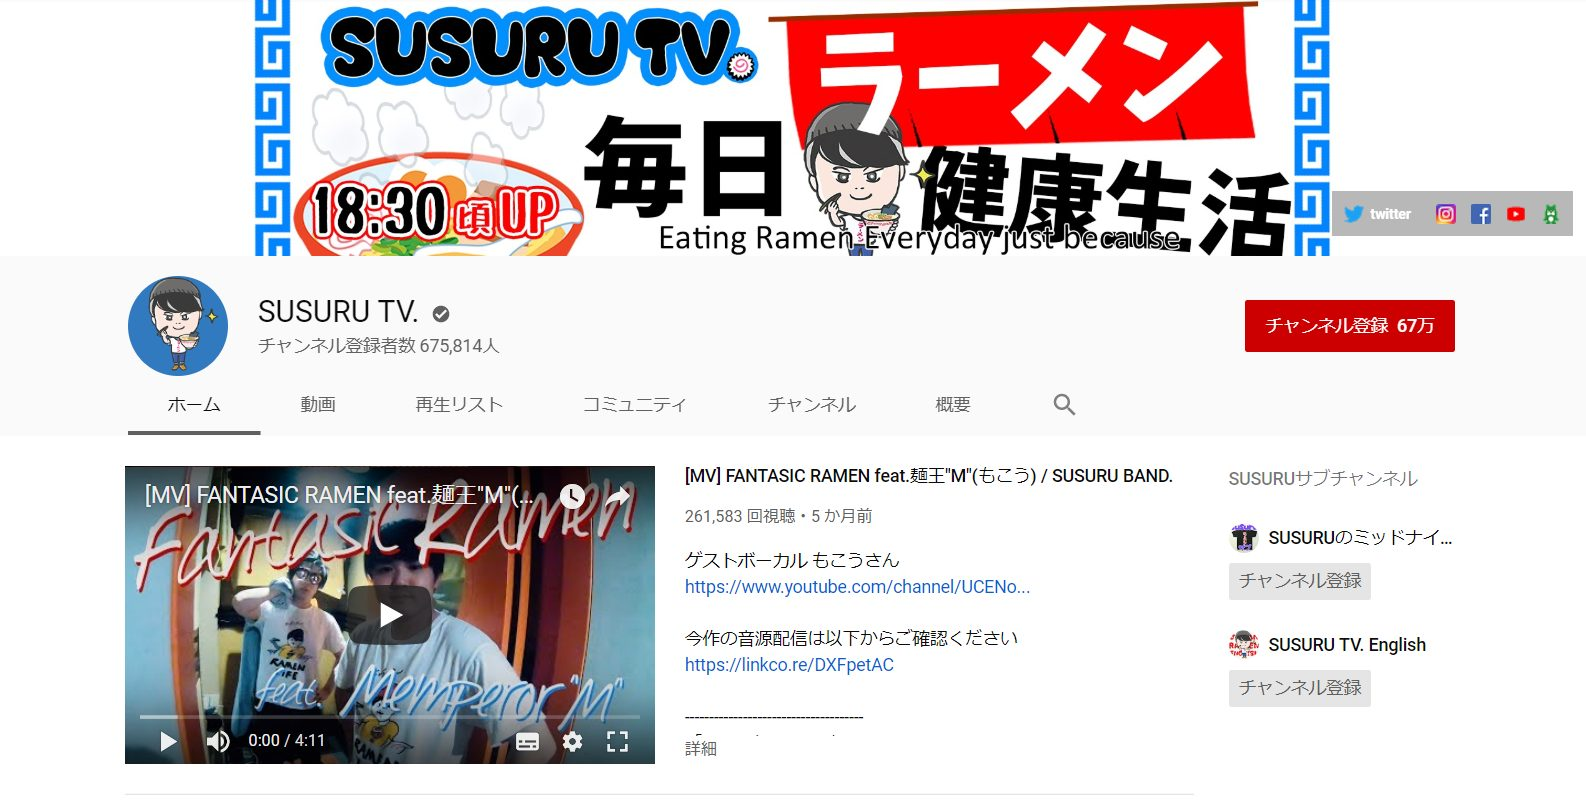 youtube-susurutv